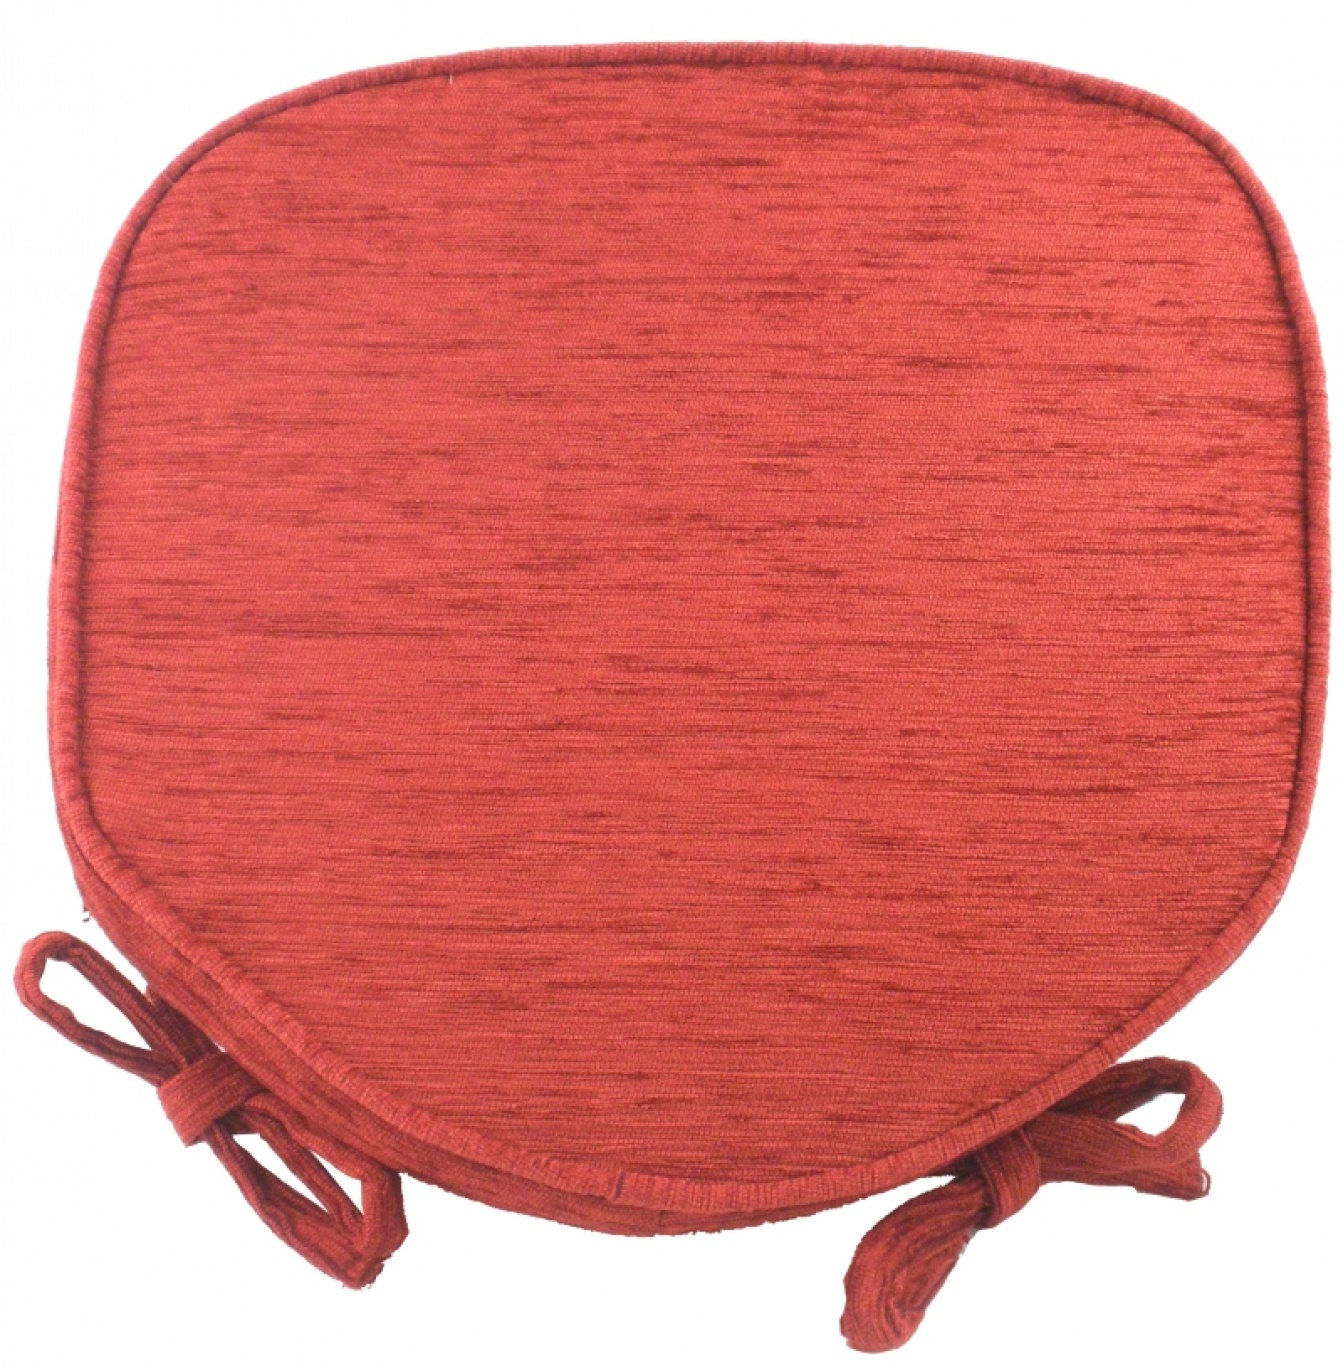 Image of Savannah Walled Seat Pads Terracotta